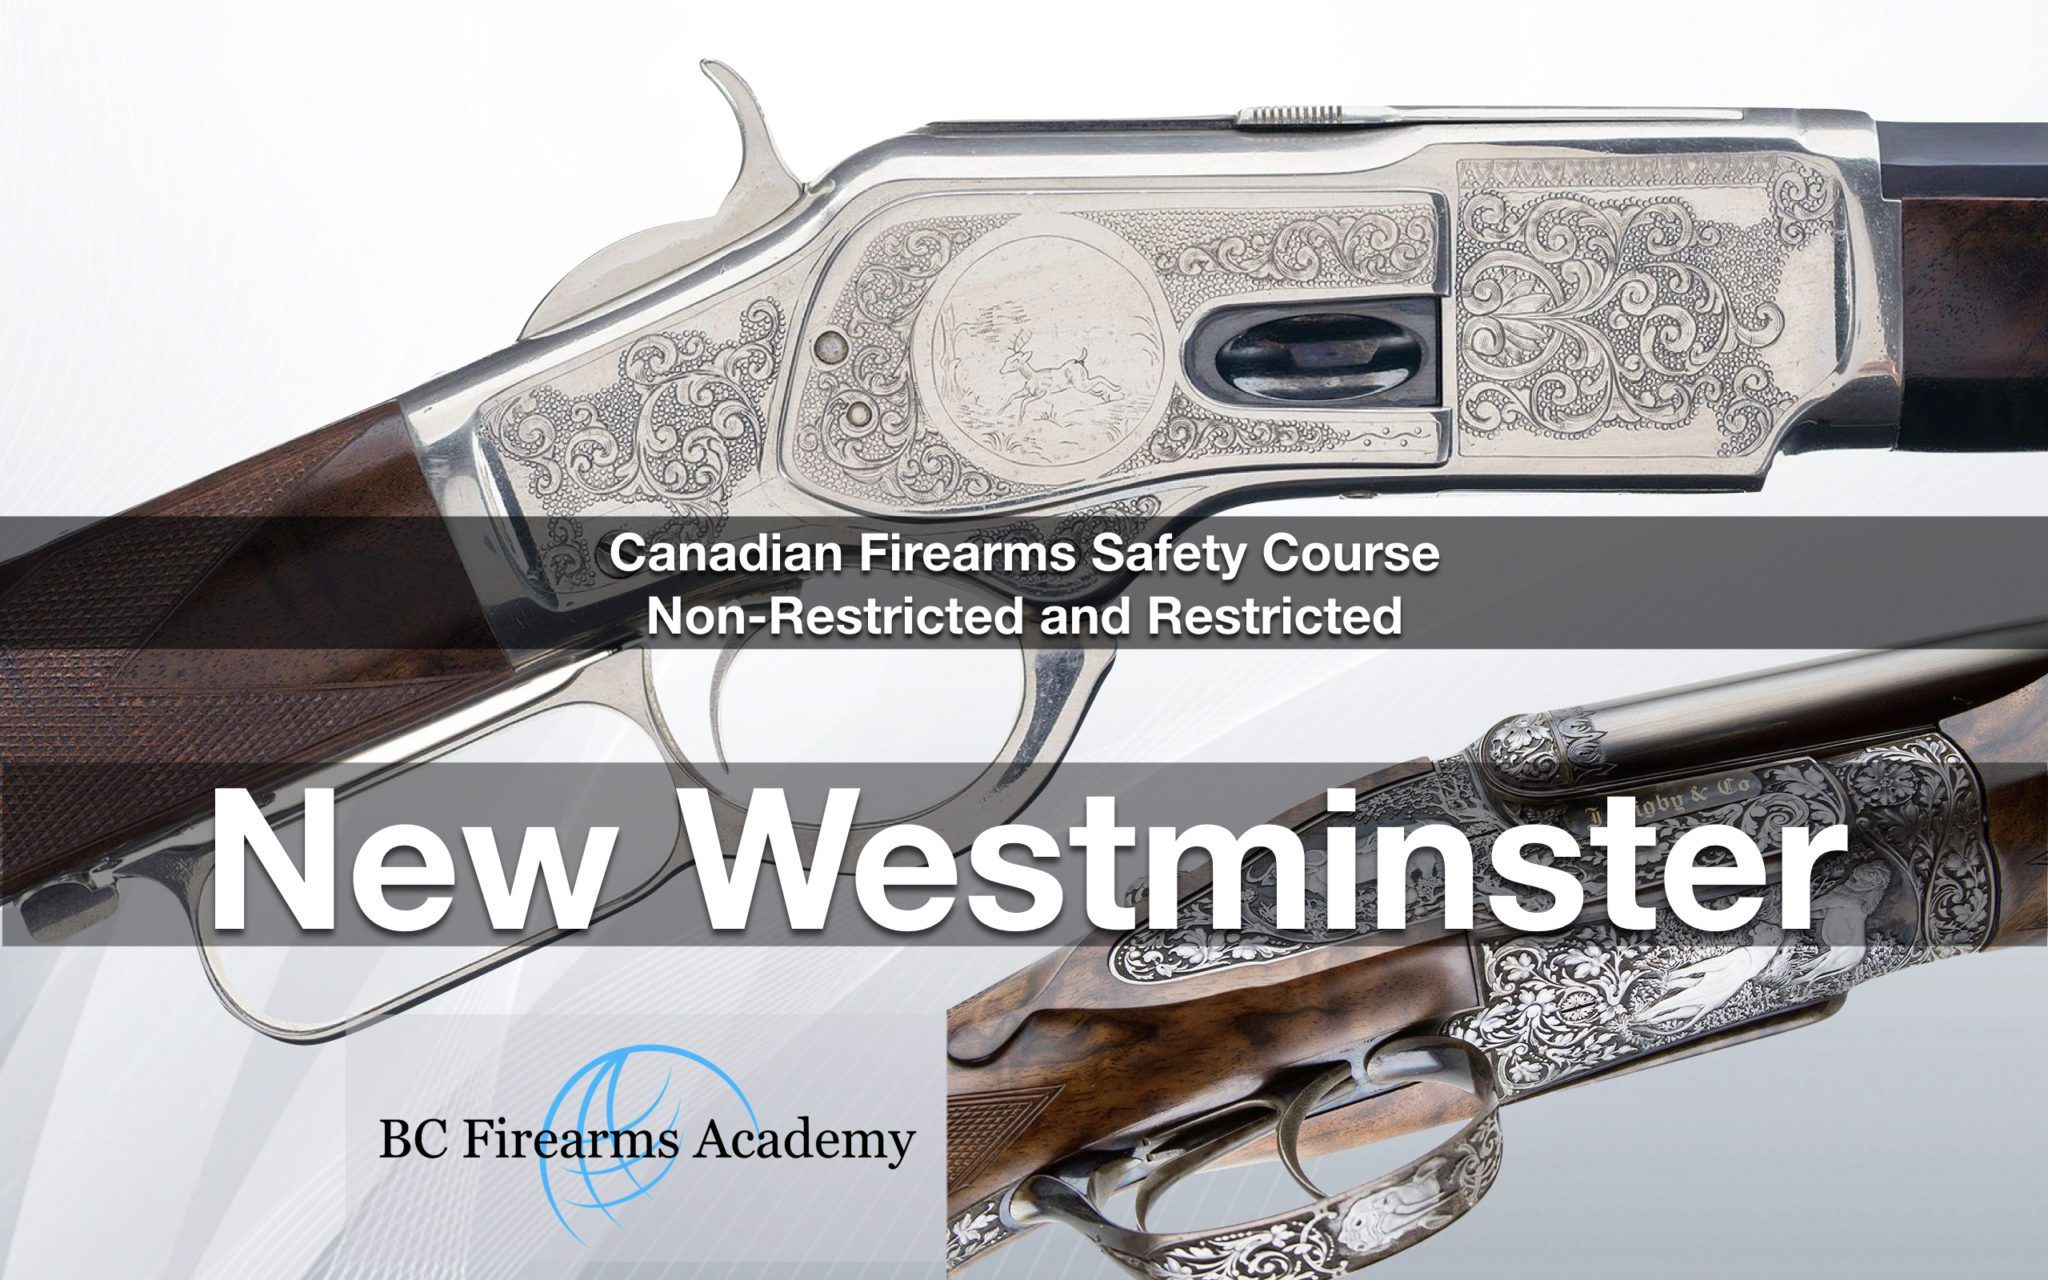 Cfsccrfsc canadian firearms safety restricted safety